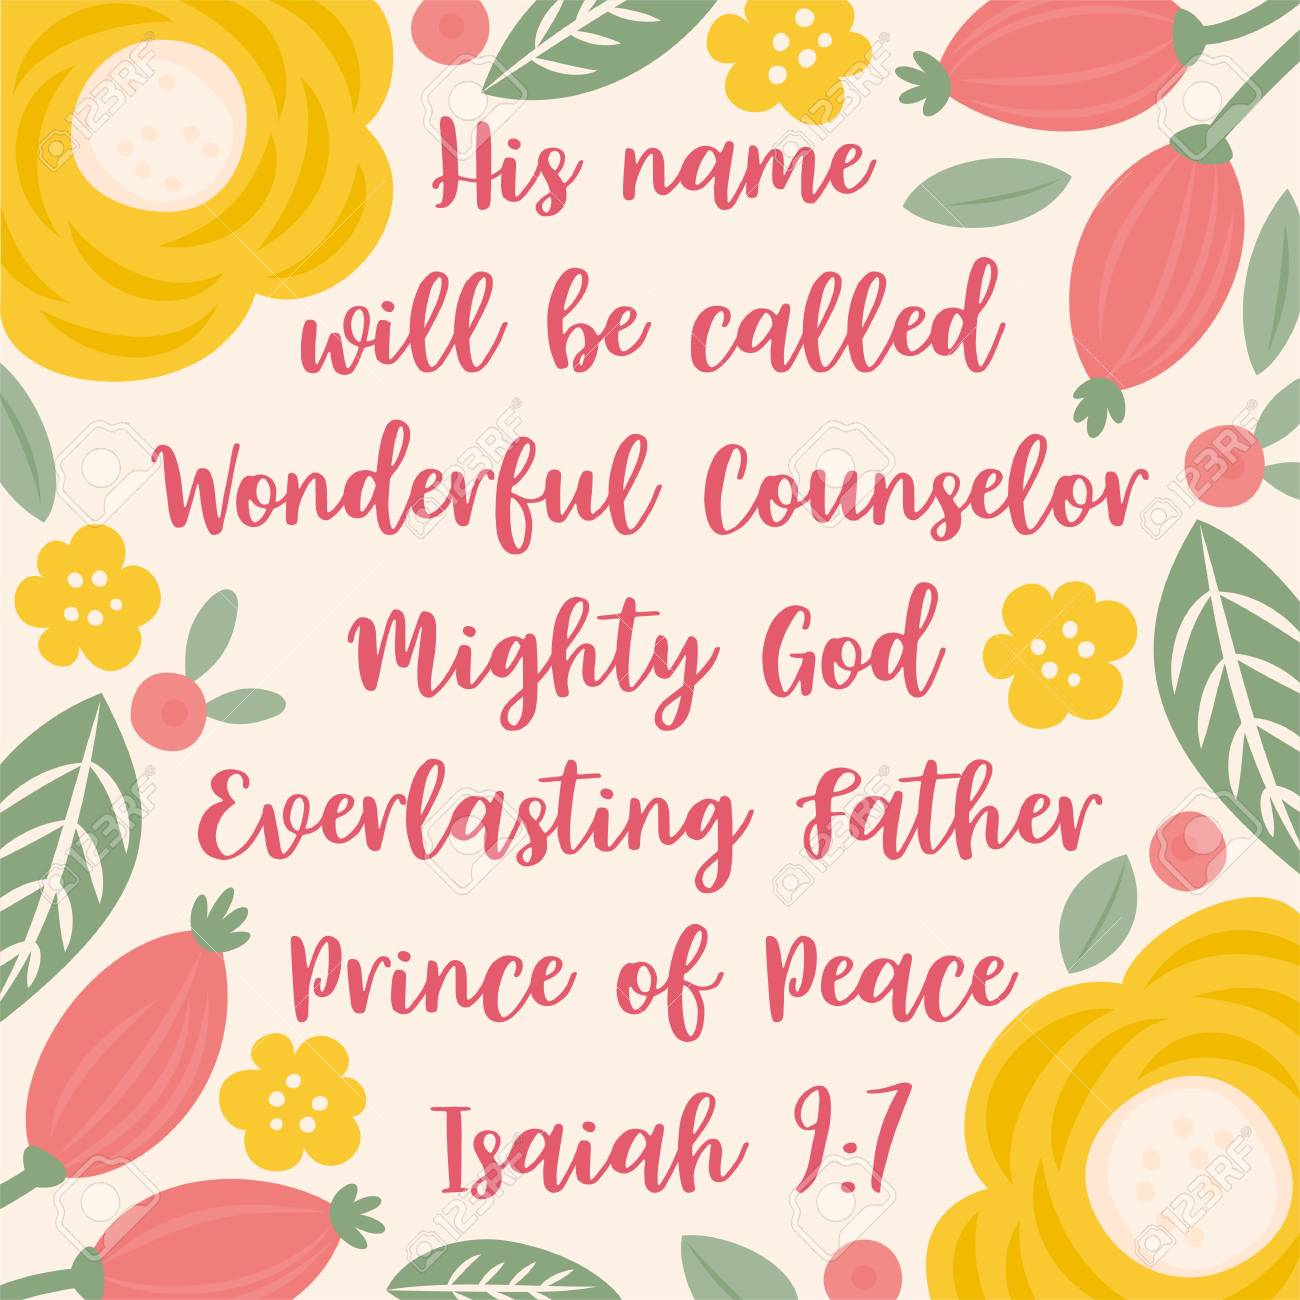 Jesus Christmas Quote.Bible Quote From Isaiah About Jesus For Christmas Holidays With